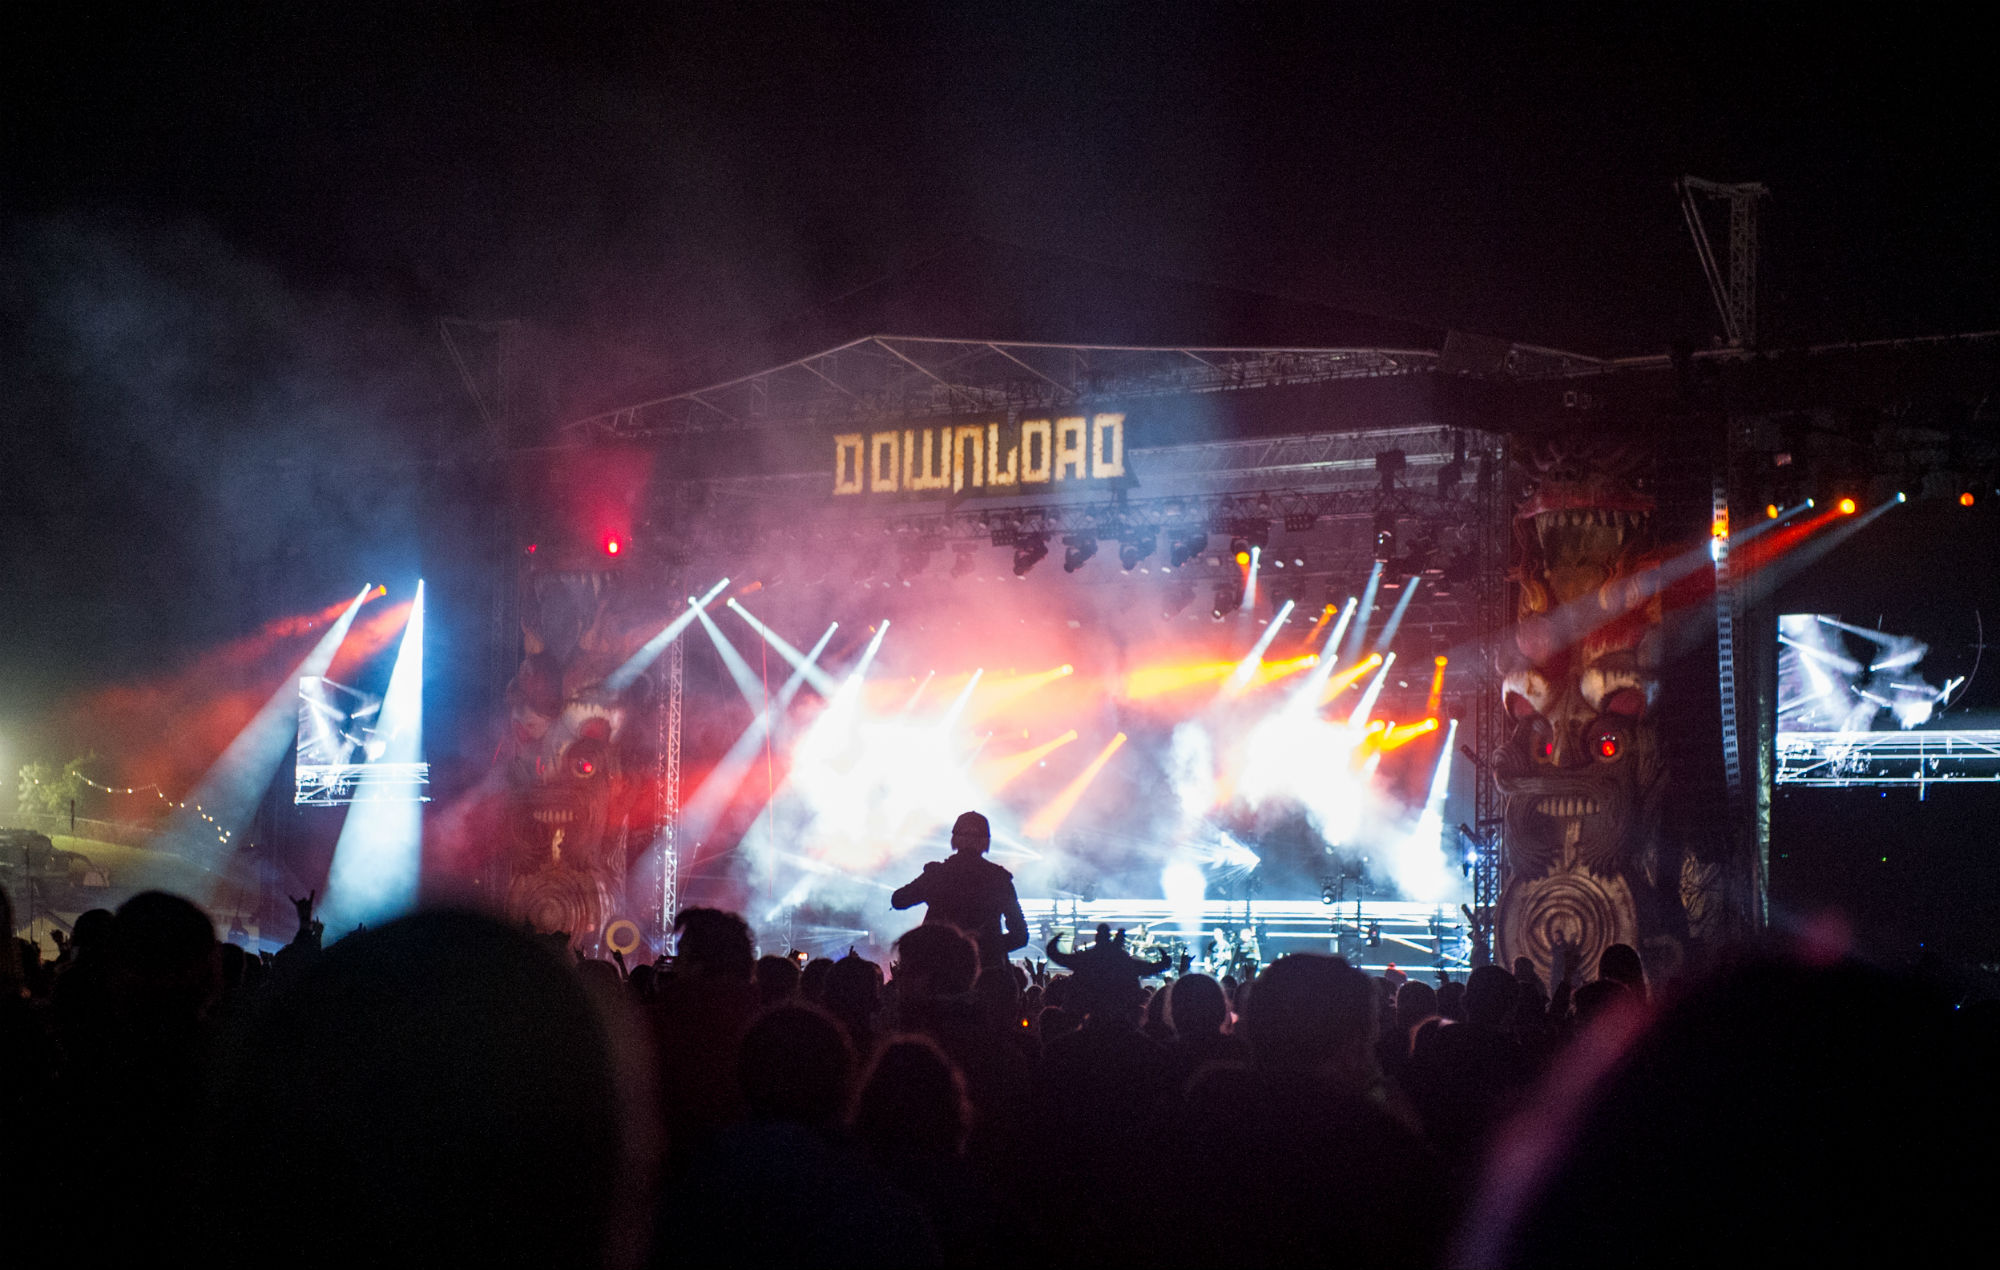 Download Festival still planning to go ahead in 2021